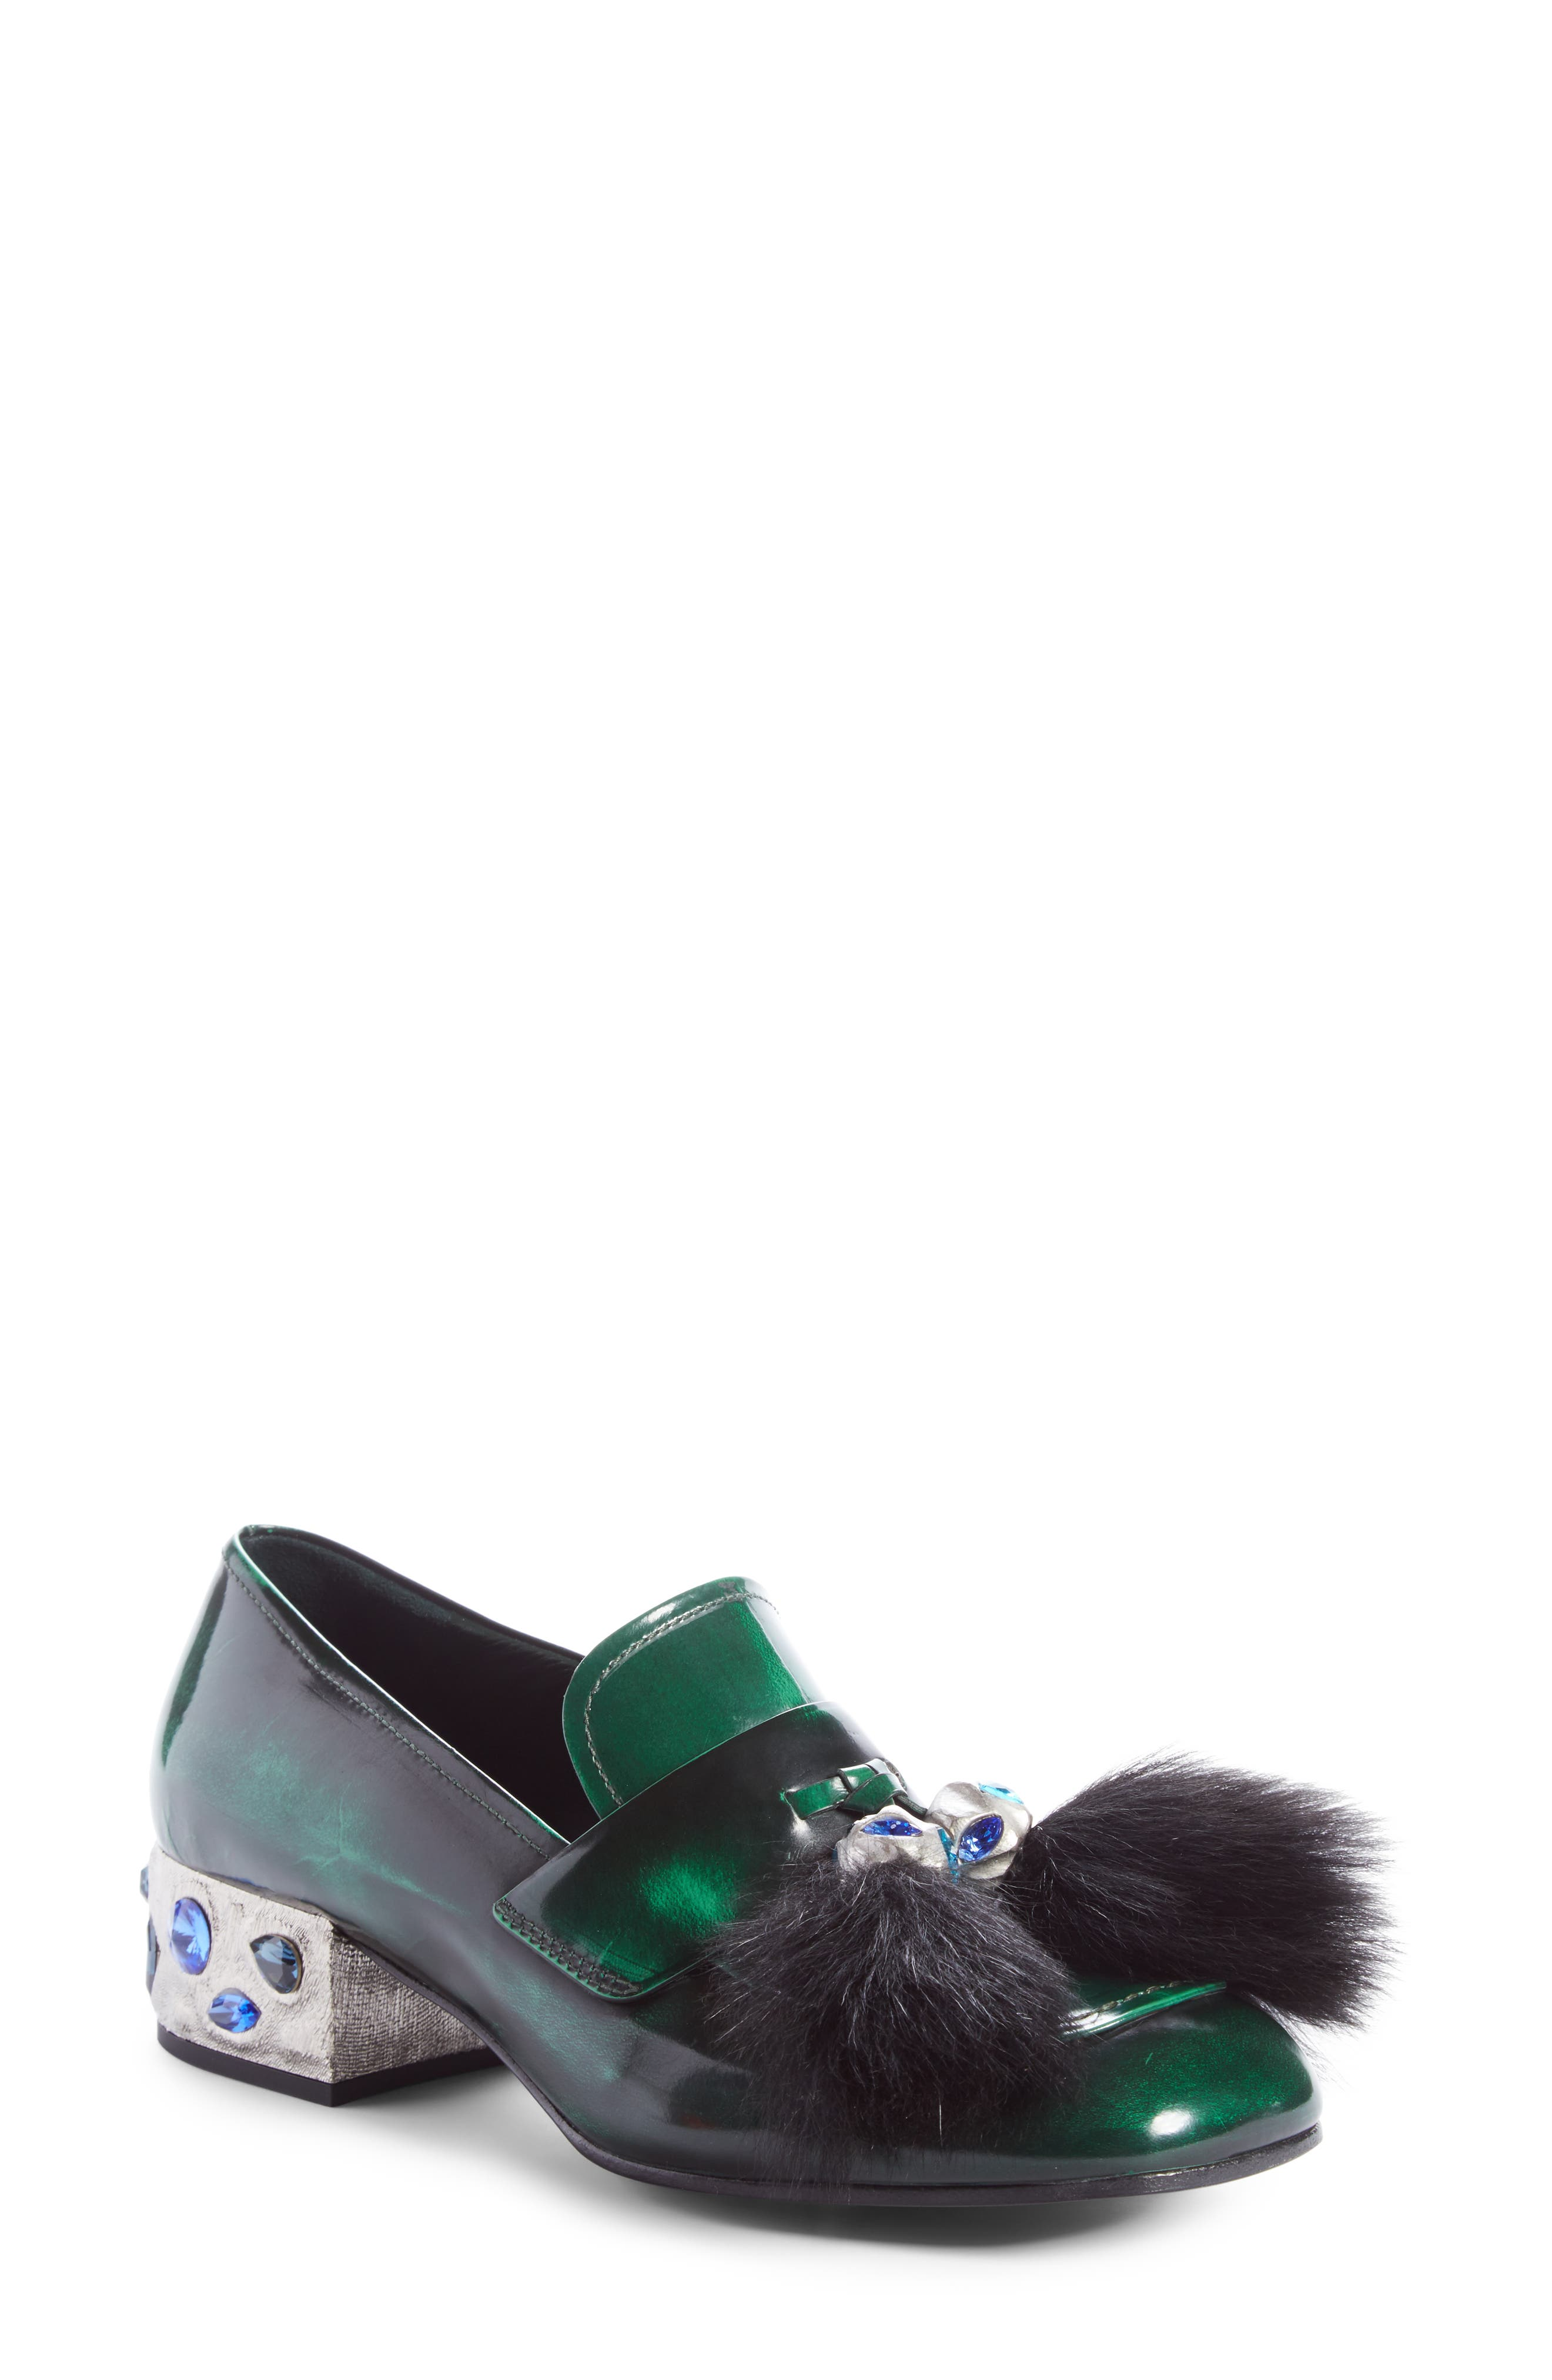 Main Image - Prada Genuine Shearling Tassel Loafer (Women)